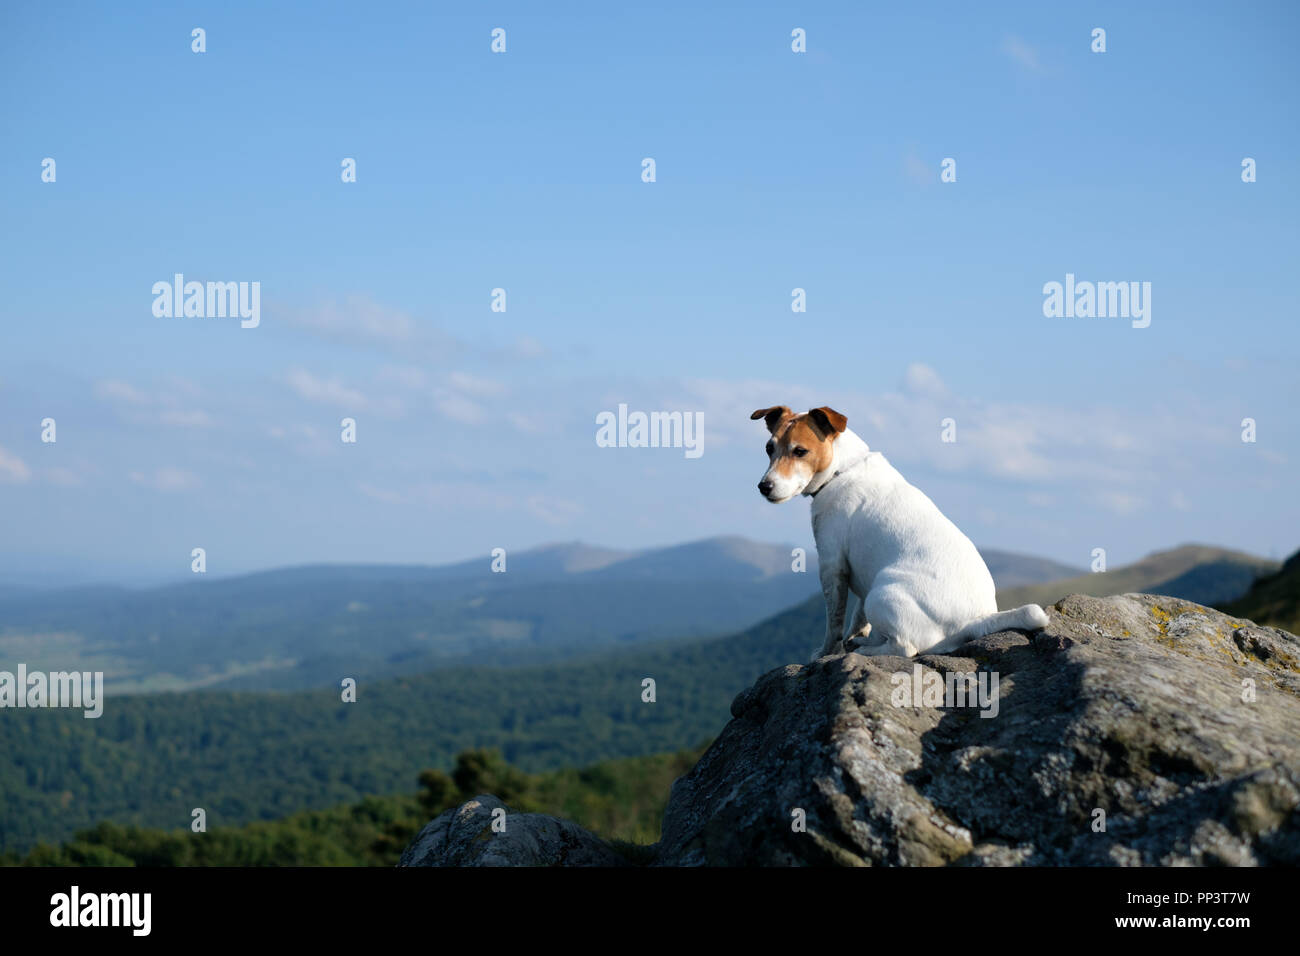 Alone white dog sitting on rock against the backdrop of an incredible mountain landscape - Stock Image